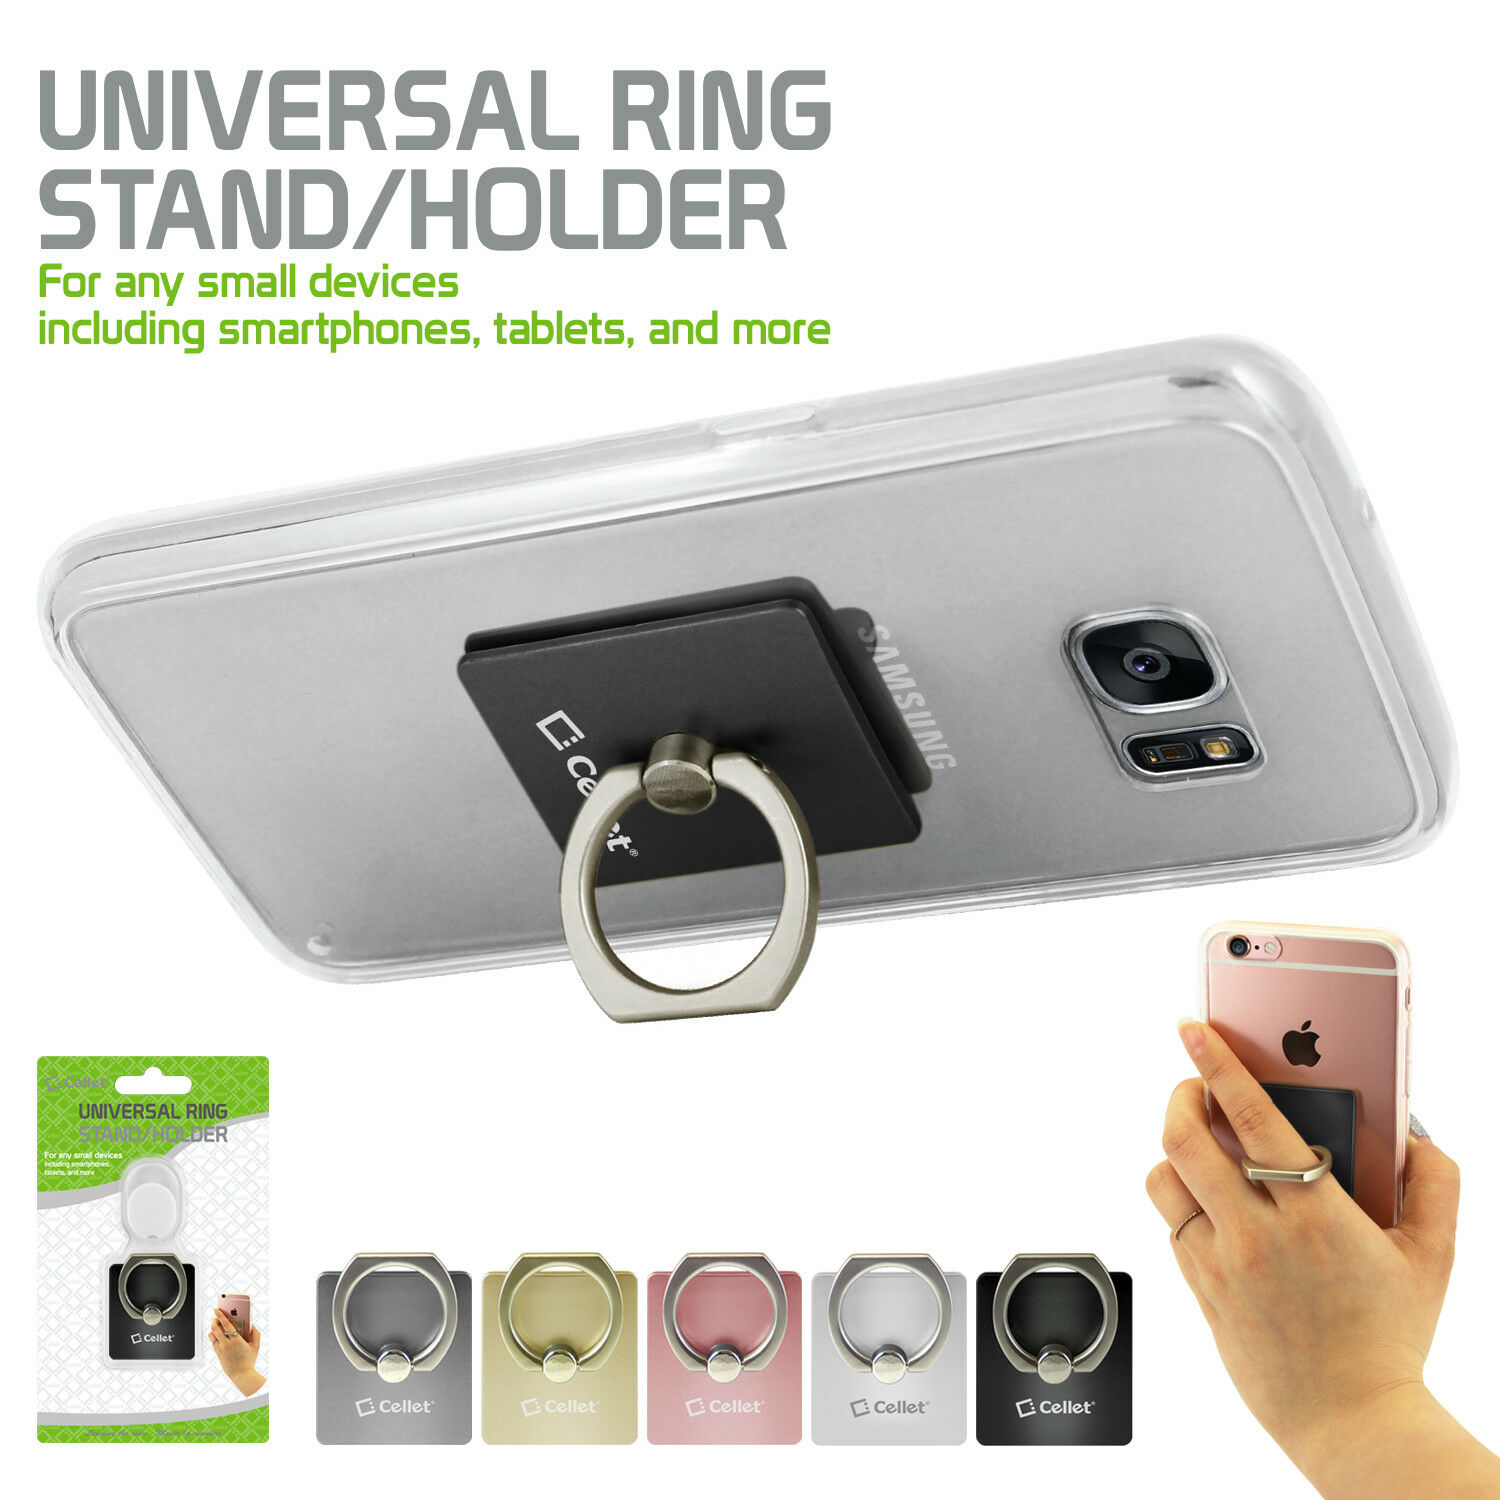 Cellet Universal Self Adhesive Ring Stand / Holder for Smart